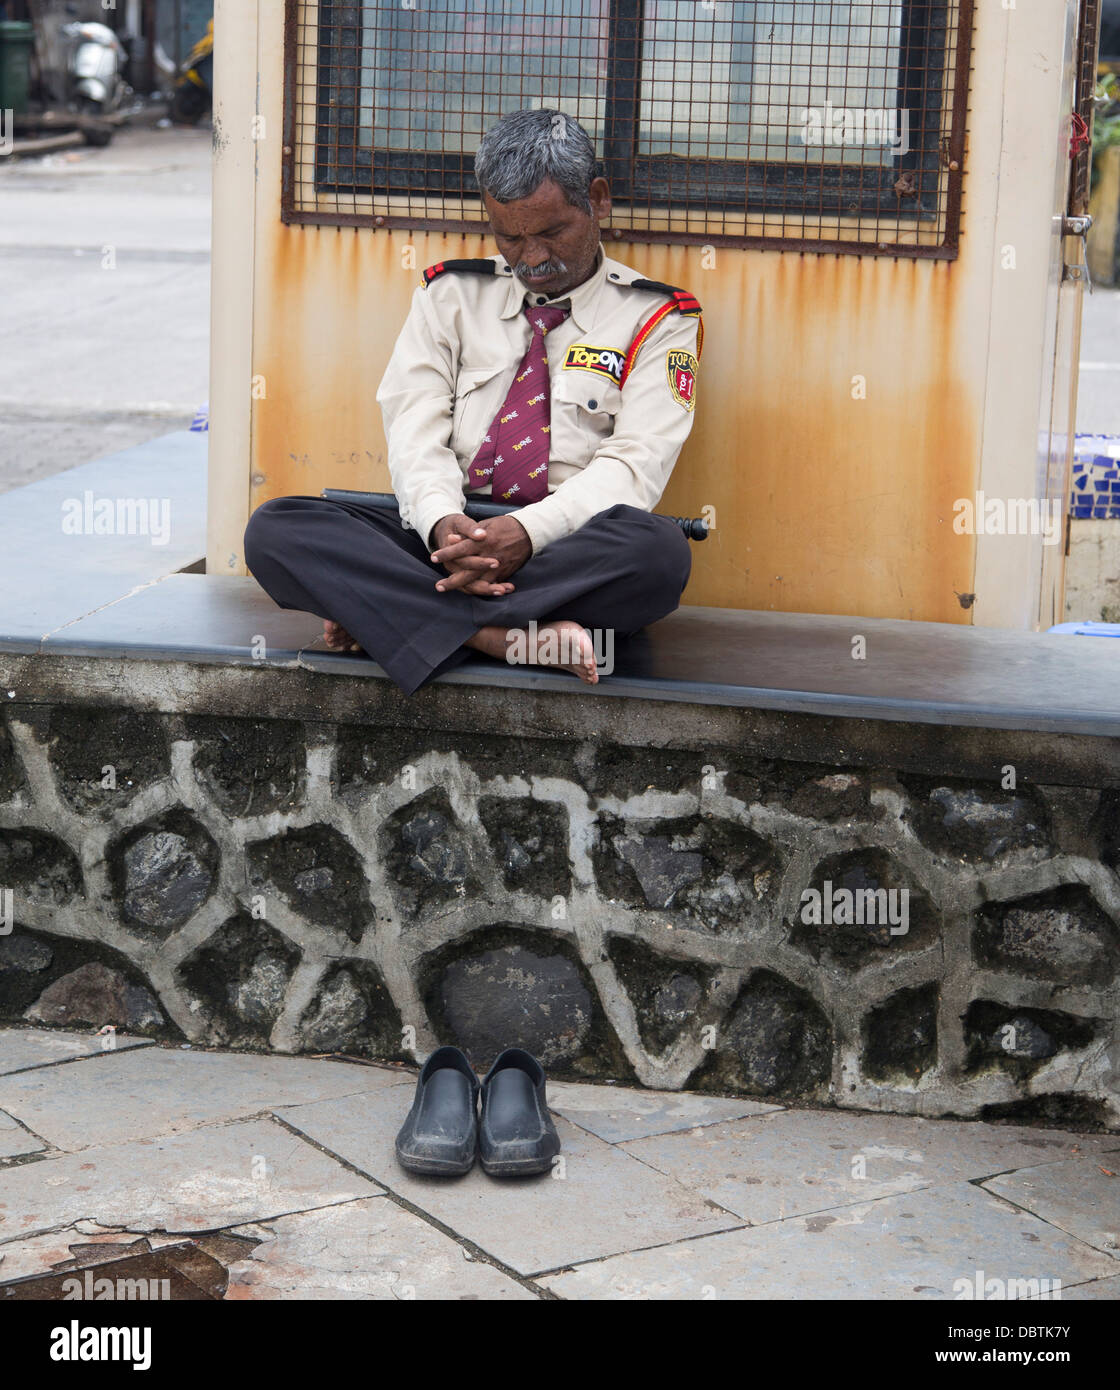 Seafront guard asleep on job snoozing  shoes off - Stock Image